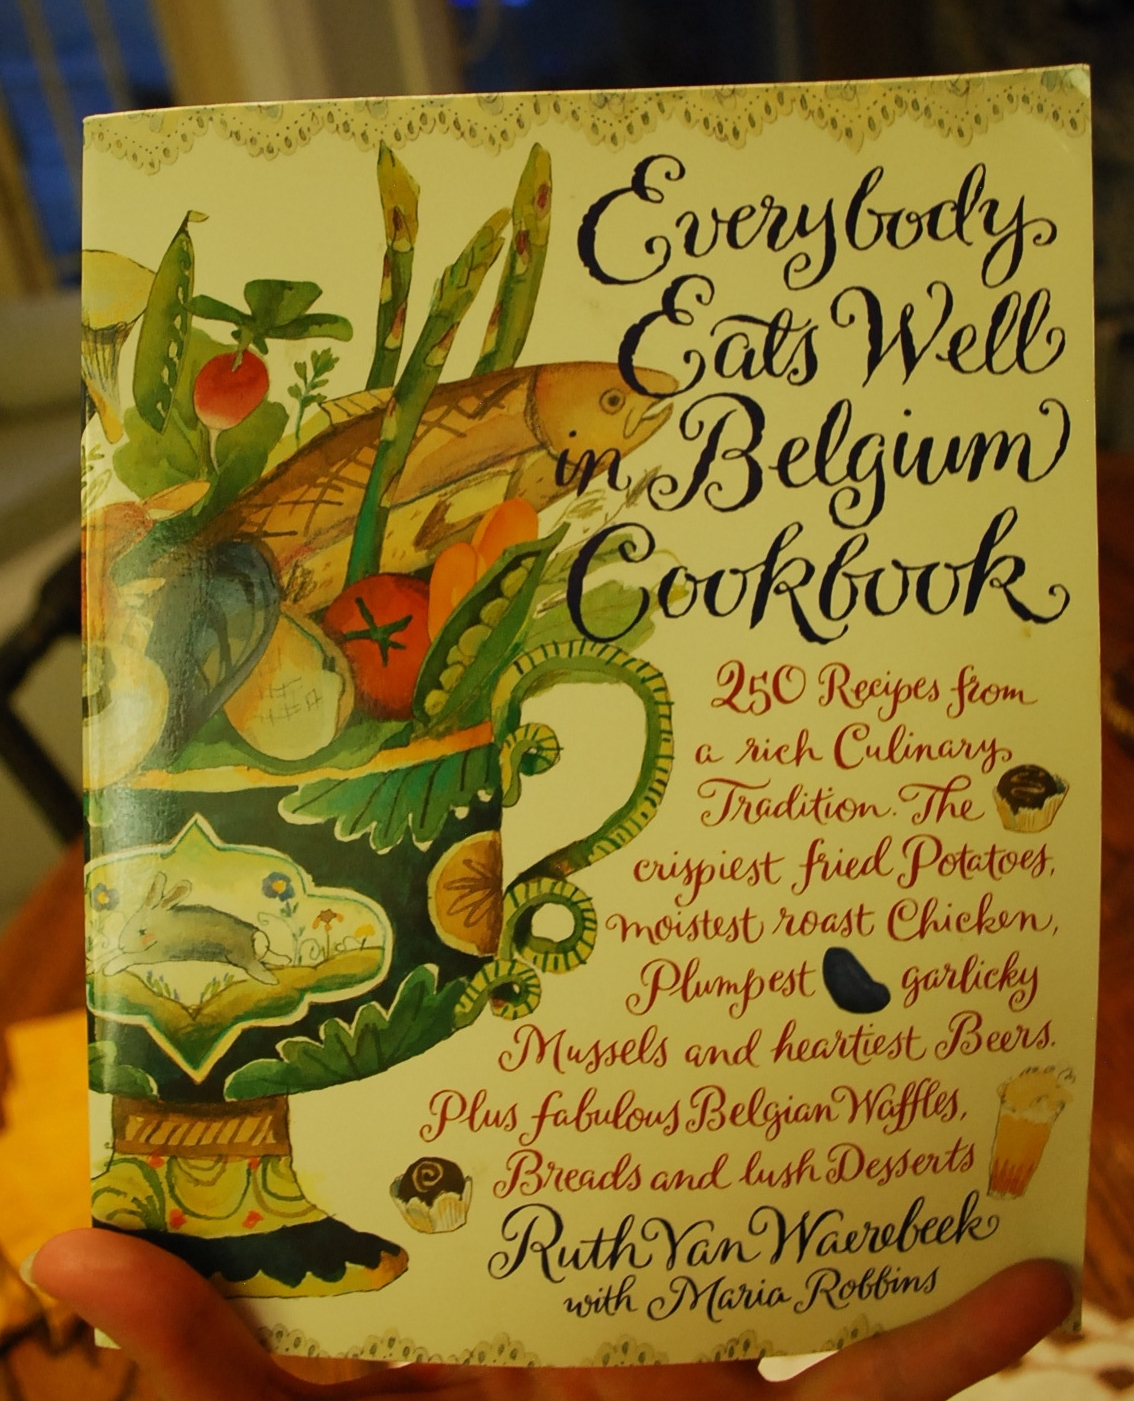 Everybody Eats Well in Belgium - This cookbook is pretty magical. Not only does it have delicious recipes, but Ruth Can Waerebeek offers great anecdotes and stories about tradition, history, and cooking tips that are interesting and at times invaluable.I highly recommend it! Or you can check out her newer cookbook The Taste of Belgium which I am thinking about exploring myself, as it is filled with beautiful pictures and new stories too!